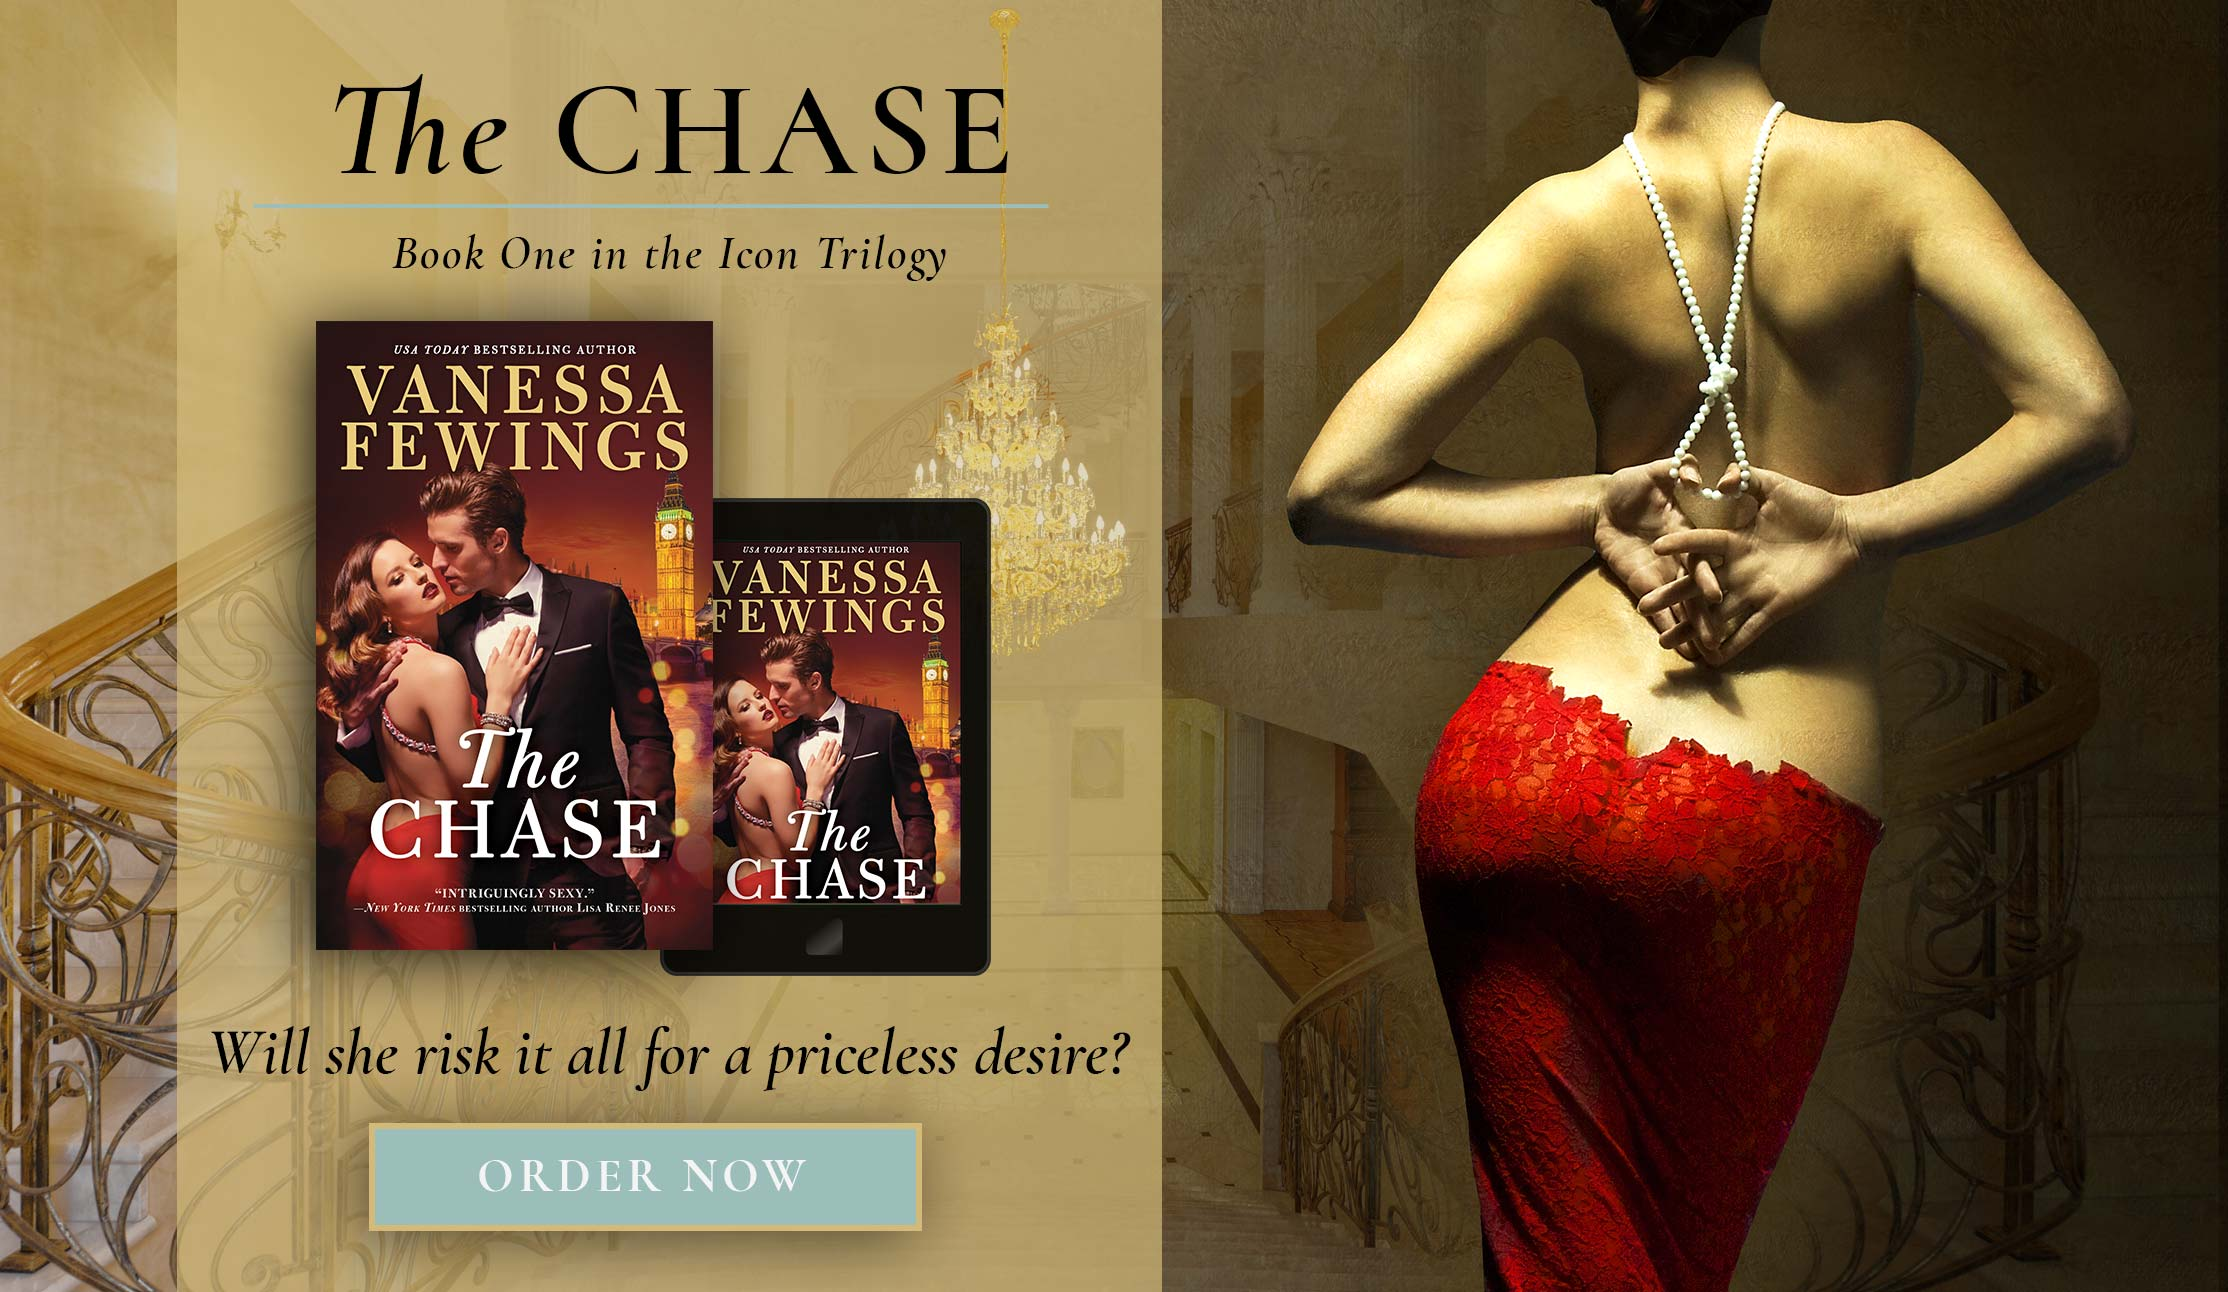 The Chase - book one in the Icon Trilogy by Vanessa Fewings